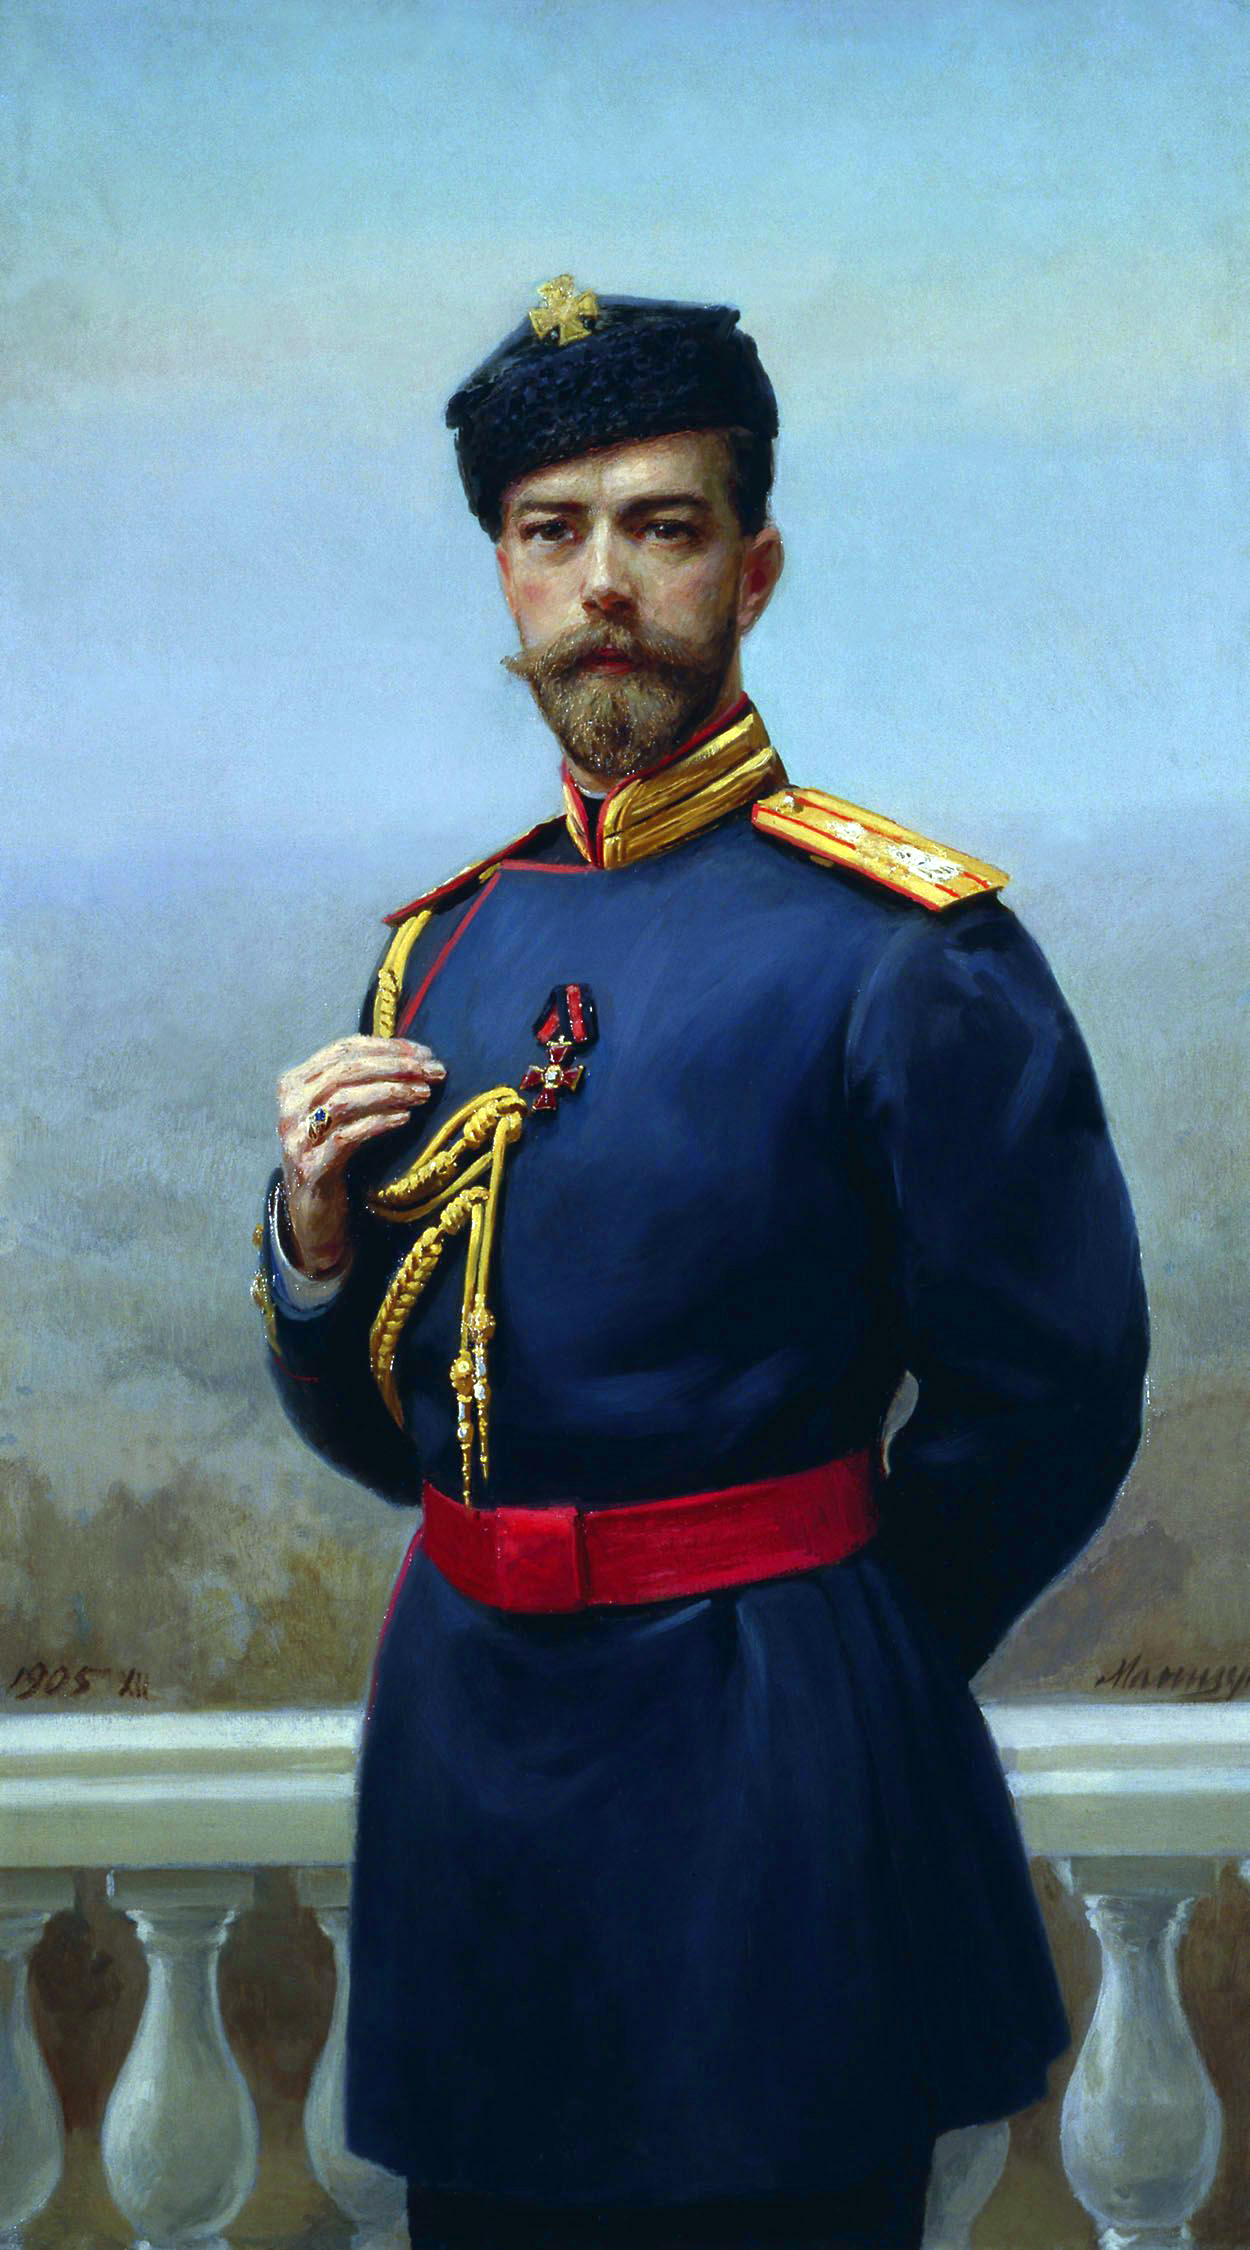 asses the reasons why tsar nicholas Russian emperor nicholas ii was brutally murdered with his family and  do you  assess the murder of the royal family as a conspiracy  this is one of the  reasons why the czar was toppled and then savagely murdered.